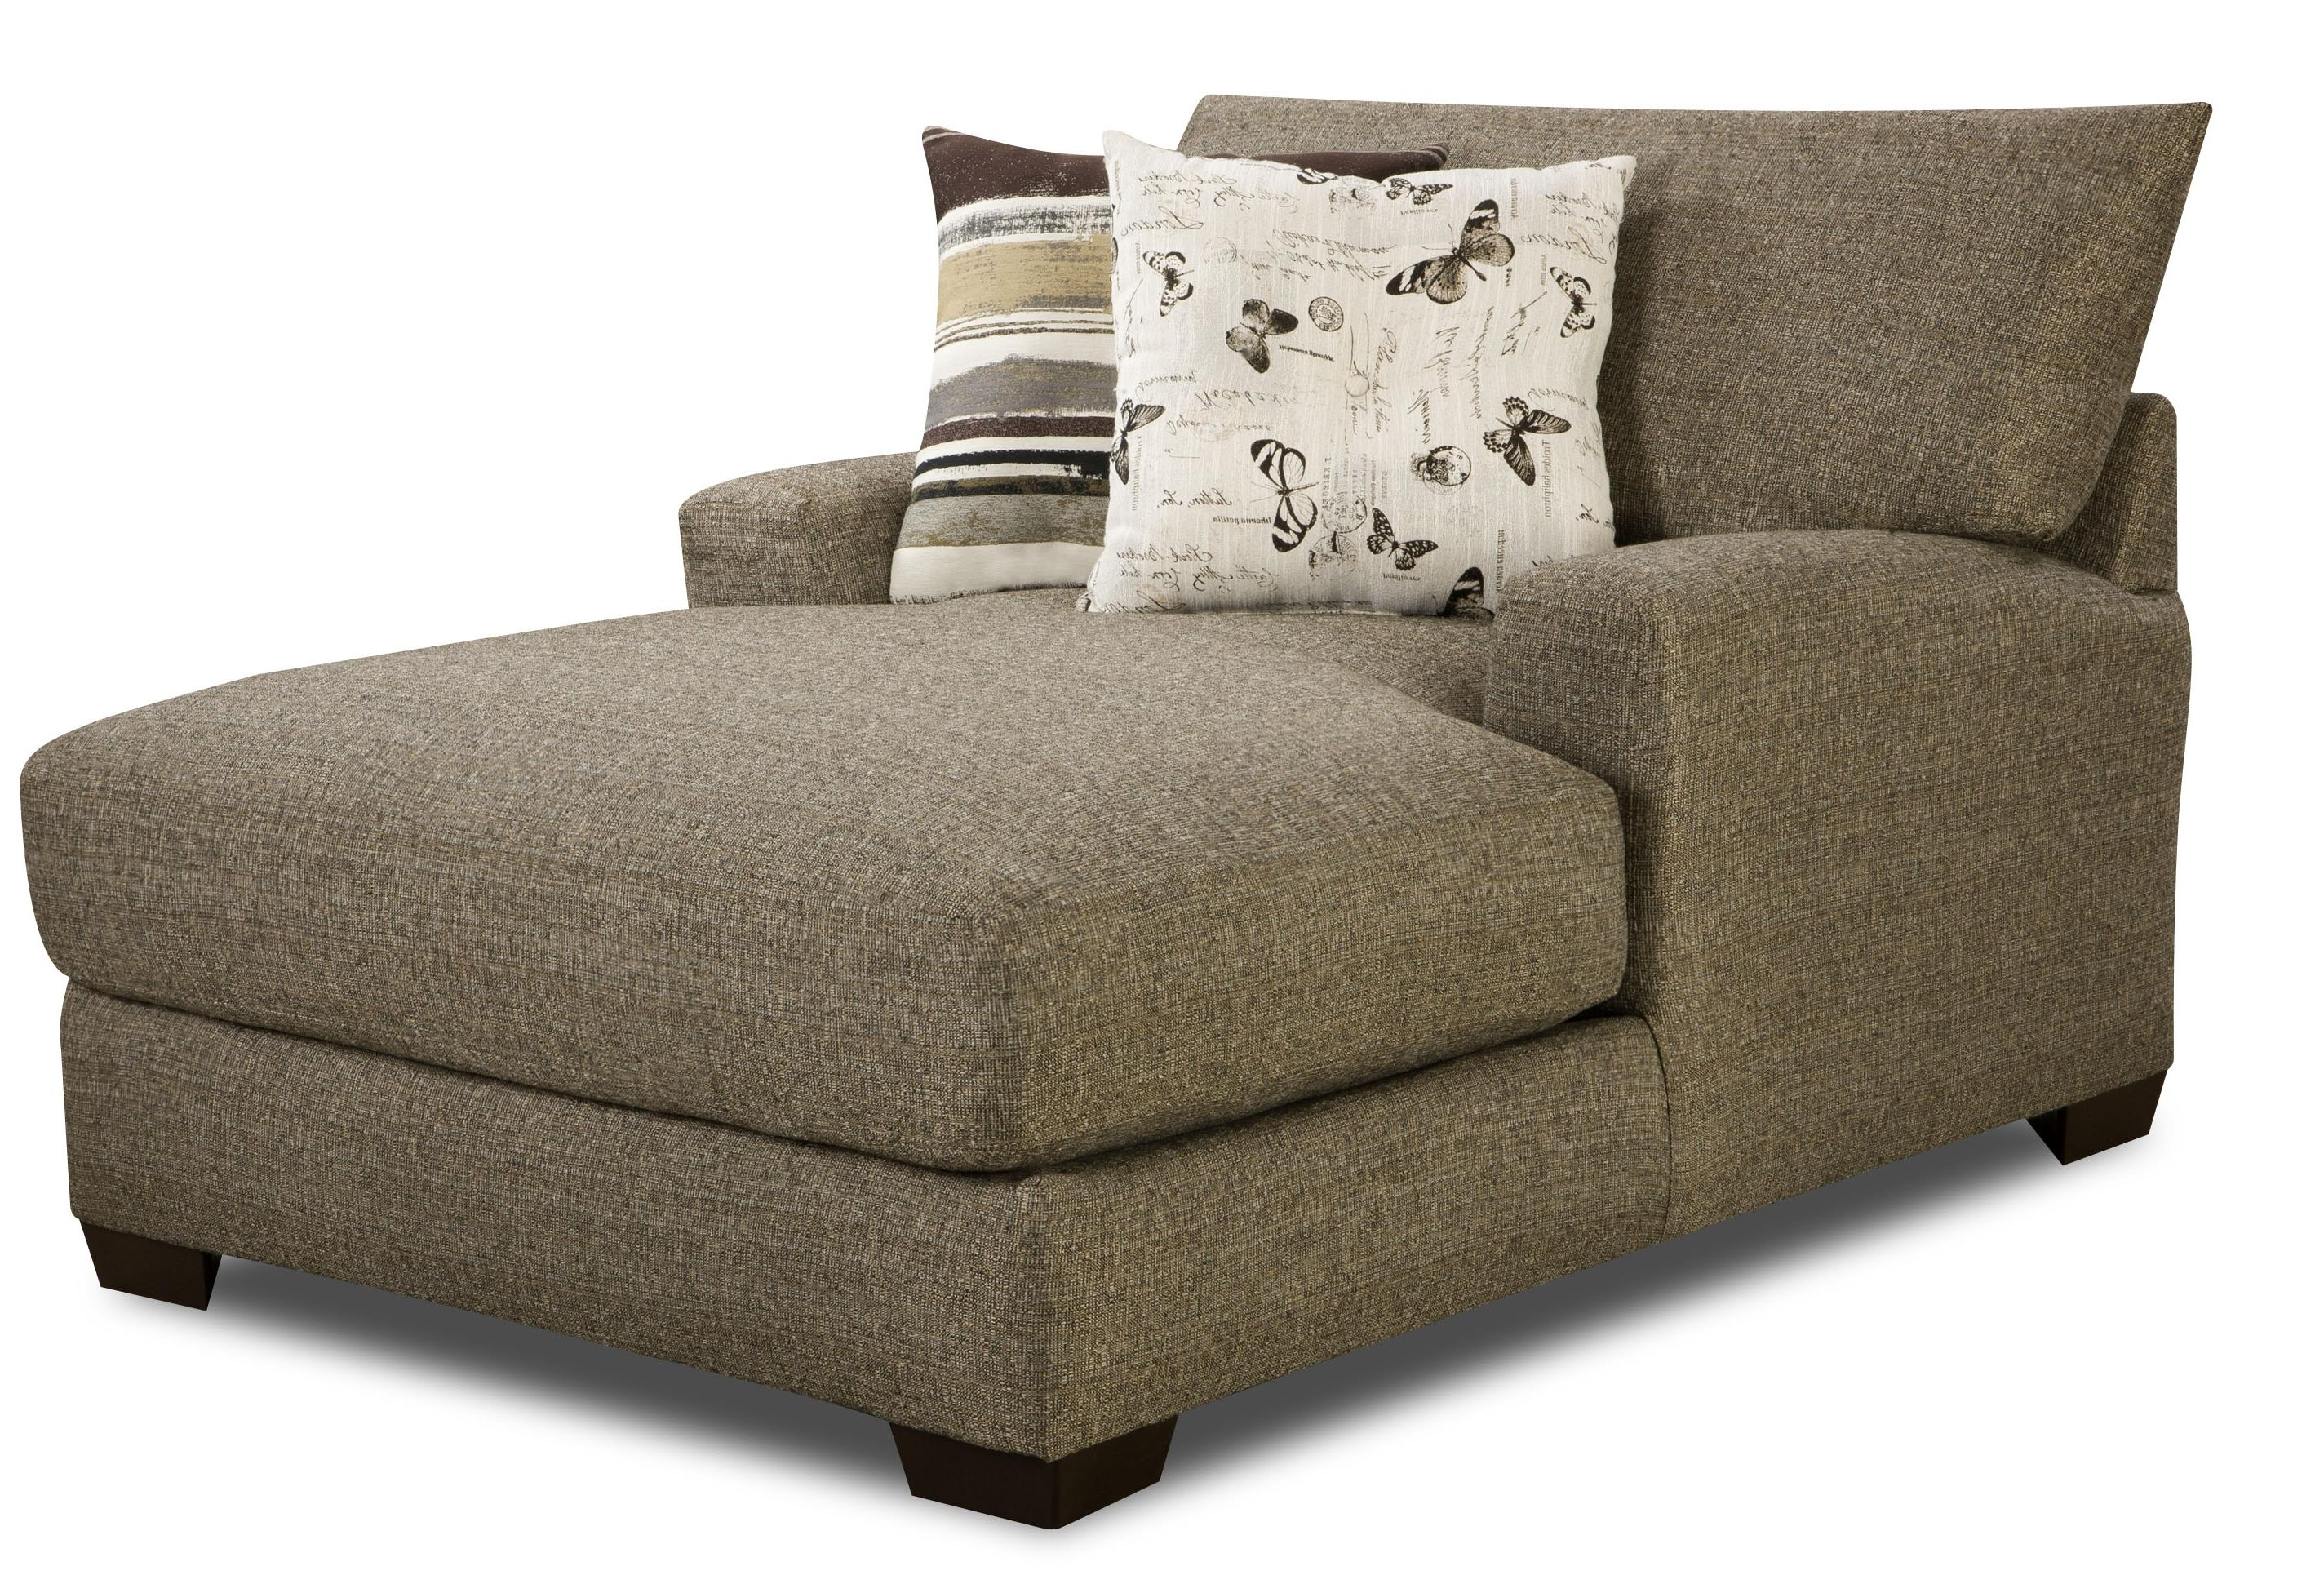 Current Interior: Alluring Furniture Chaise Lounge Indoor For Living Room In Indoor Chaise Lounge Covers (View 4 of 15)